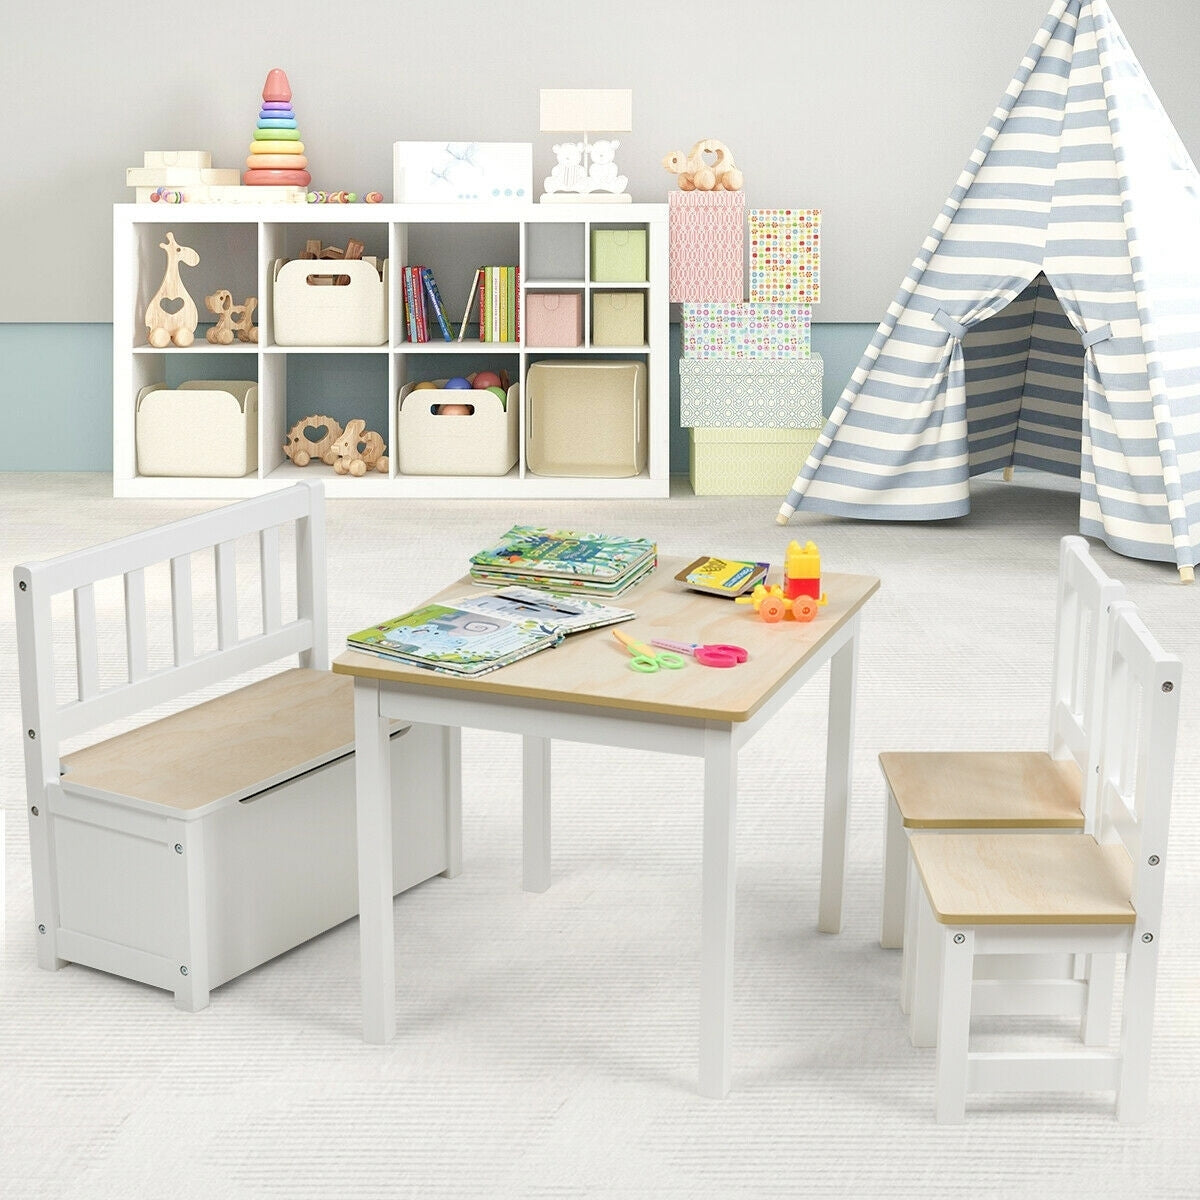 4 PCS Kids Wood Table Chairs Set -Natural - Color: Natural